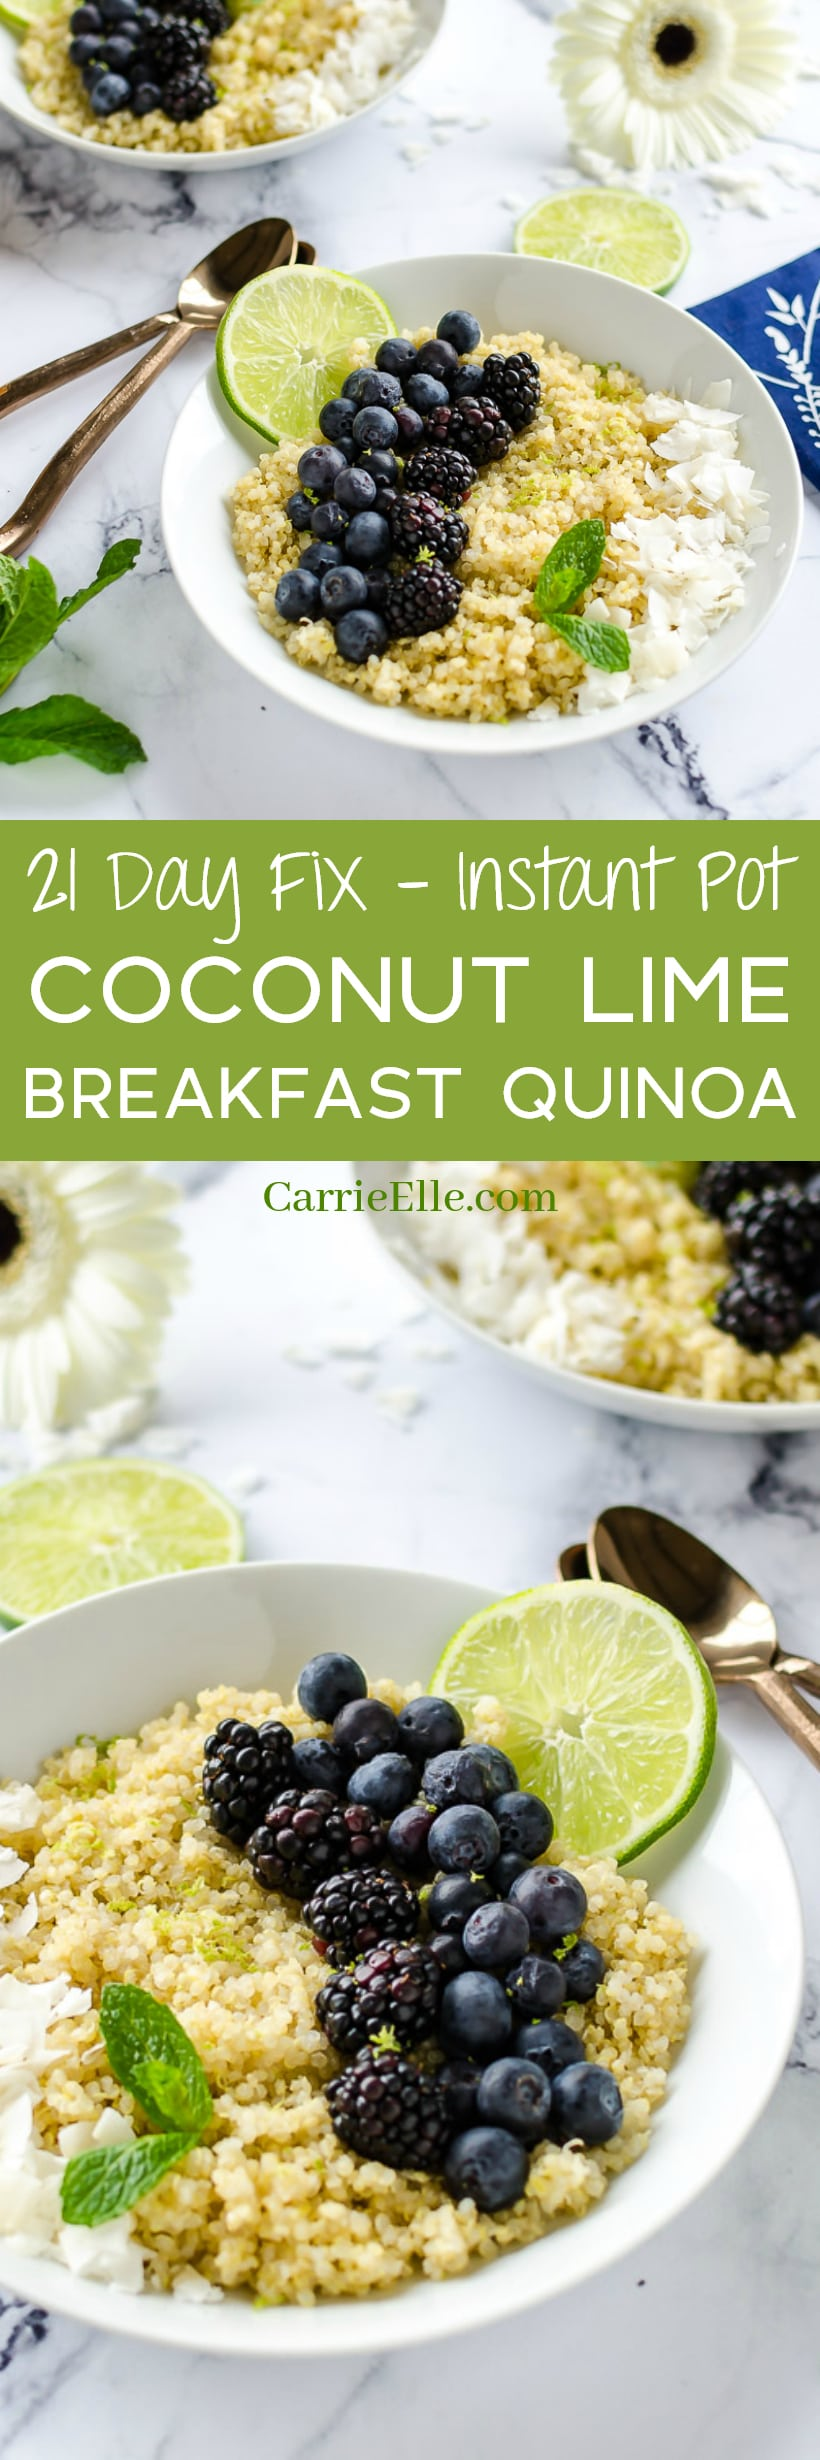 21 Day Fix Instant Pot Breakfast Quinoa